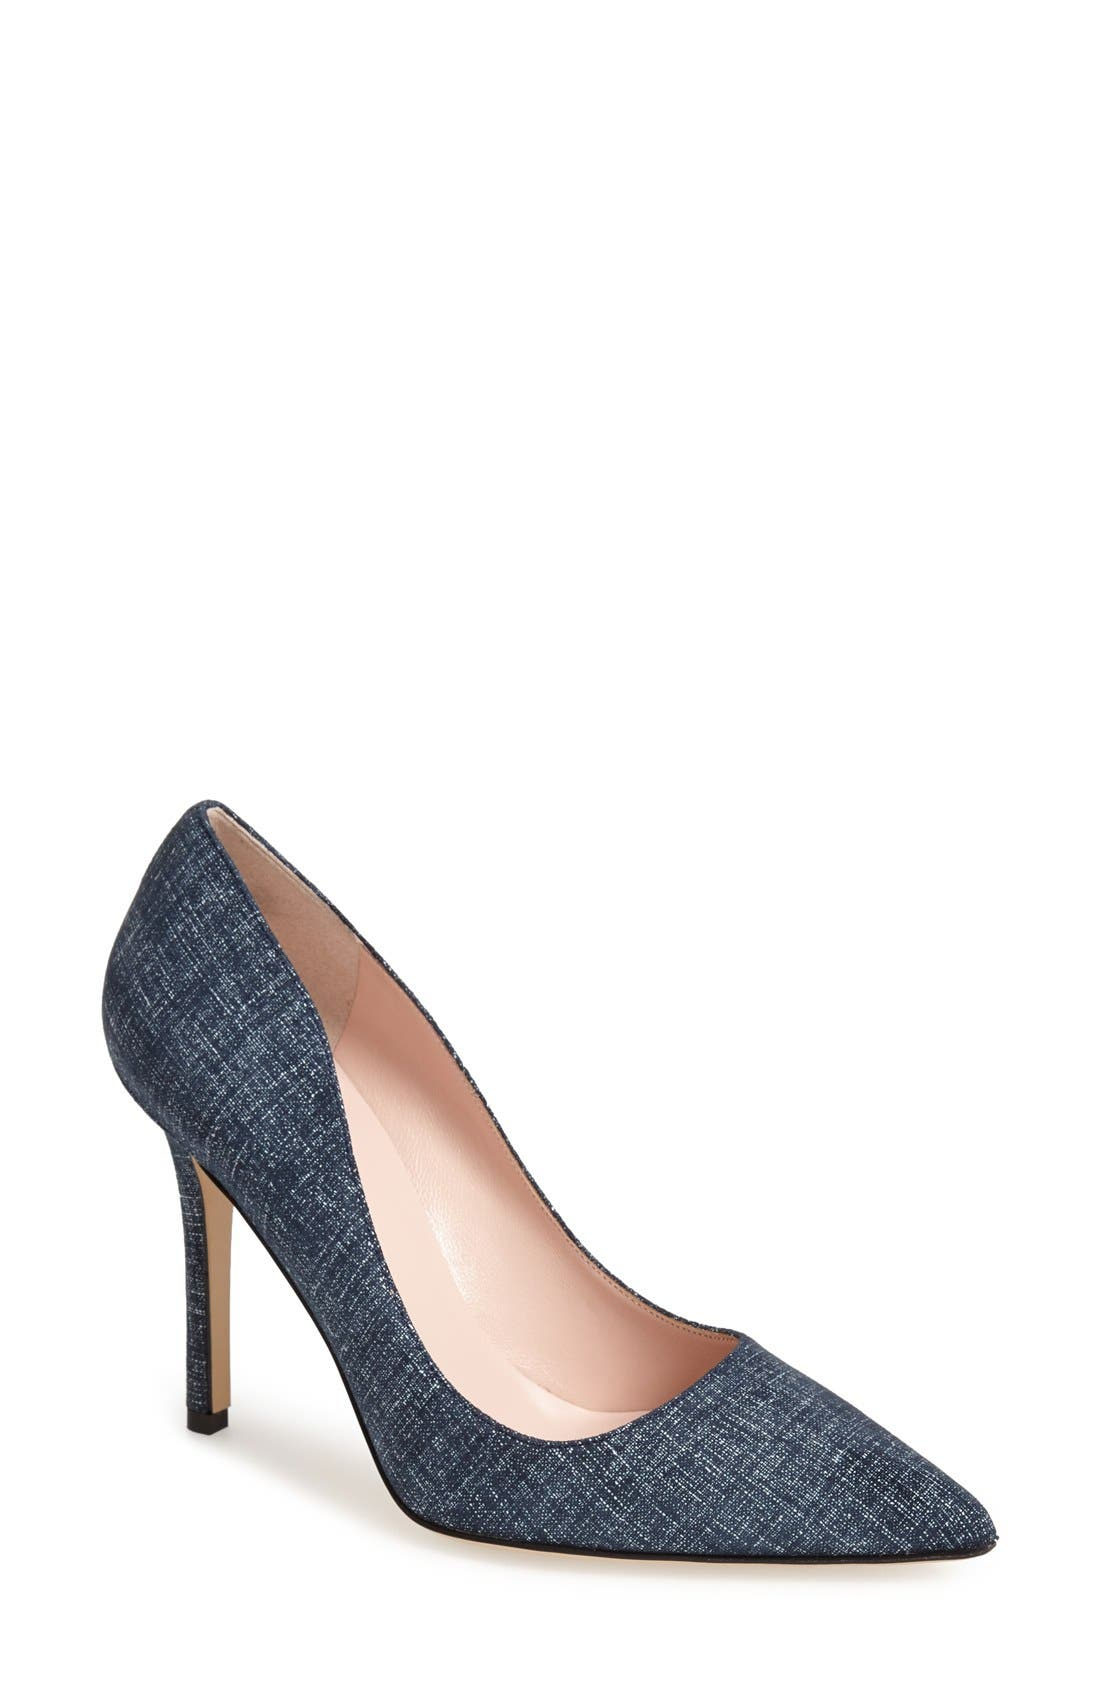 Main Image - kate spade new york 'larisa' pointy toe pump (Women)